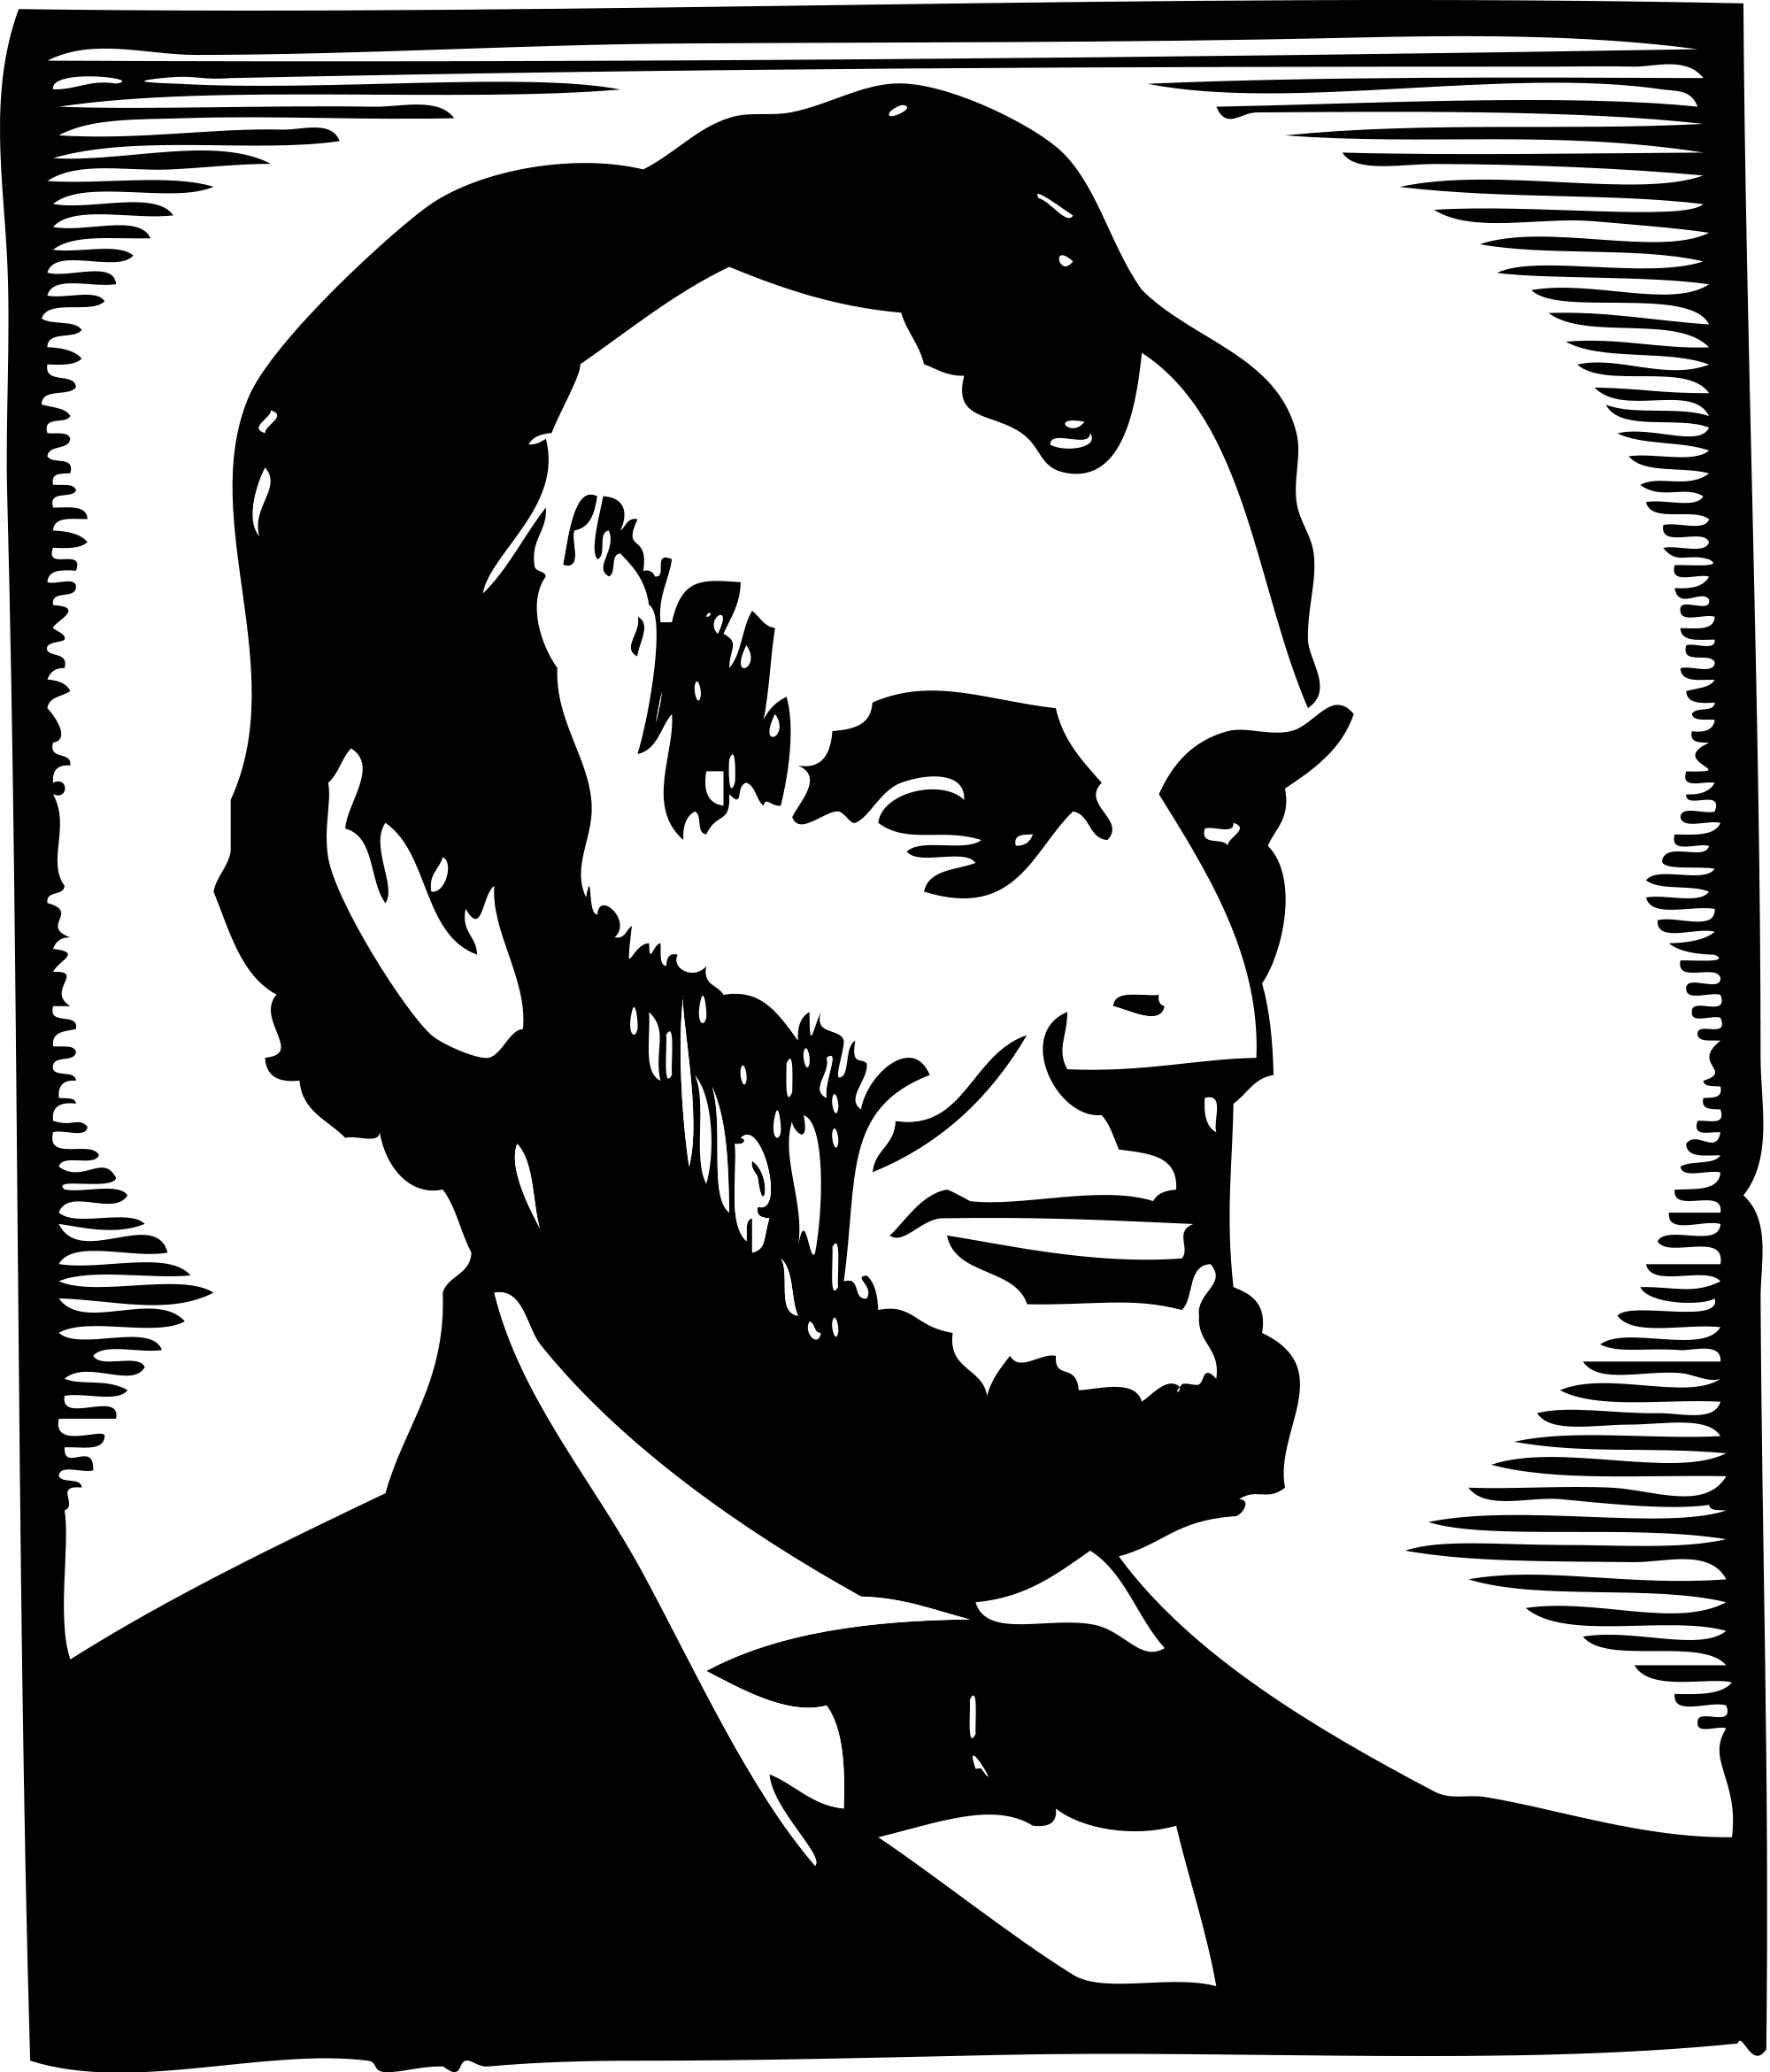 File:Abraham Lincoln clip art.svg - Wikimedia Commons